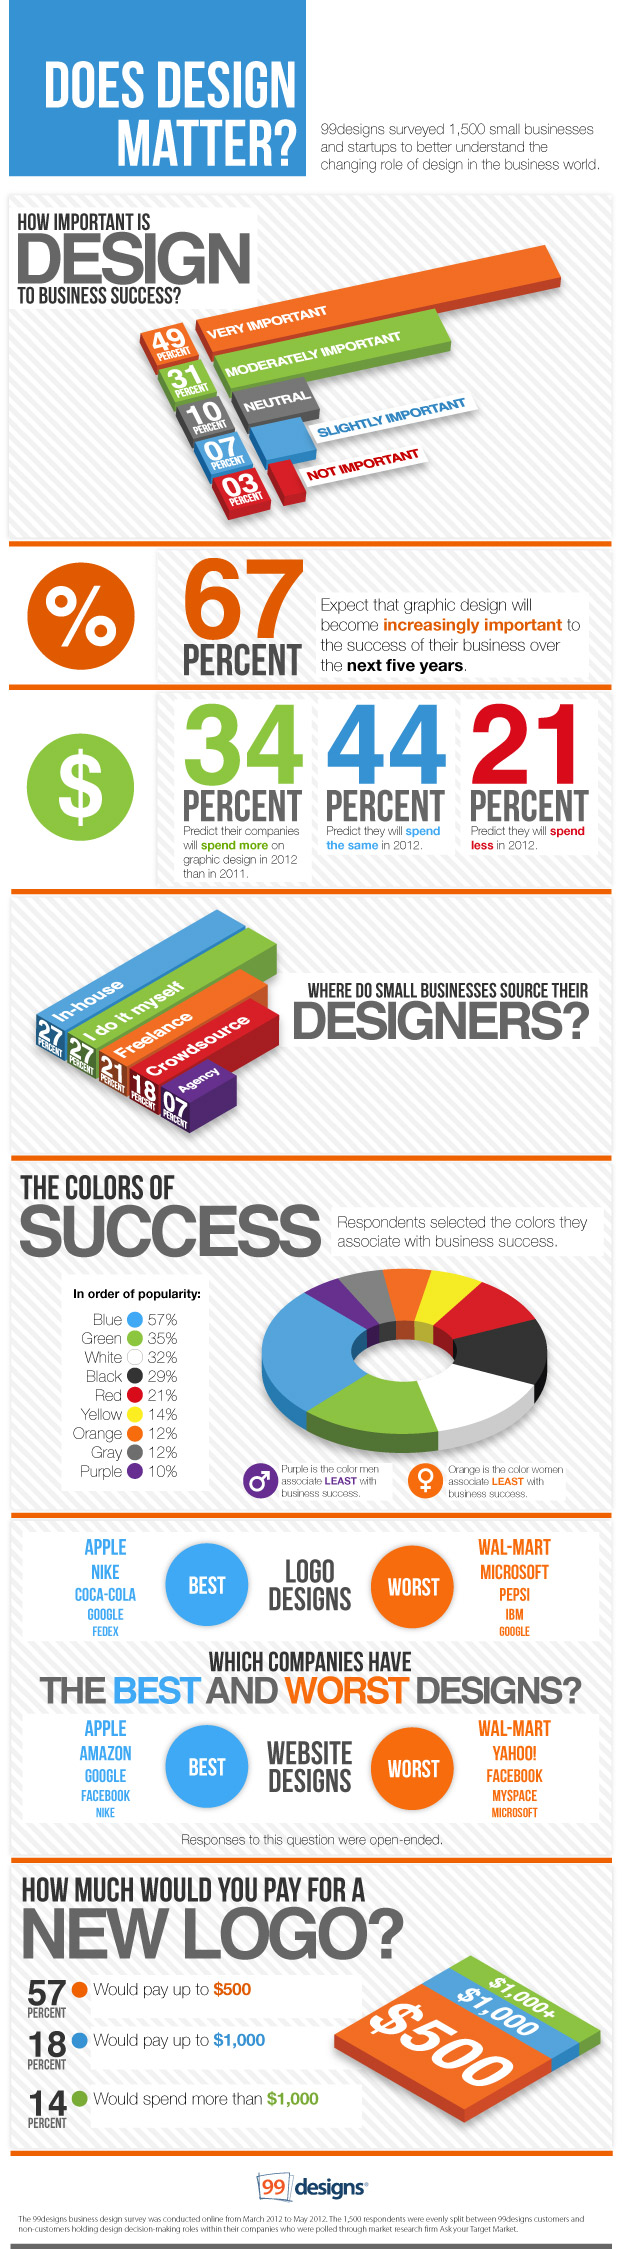 Does-Design-Matter-Infographic